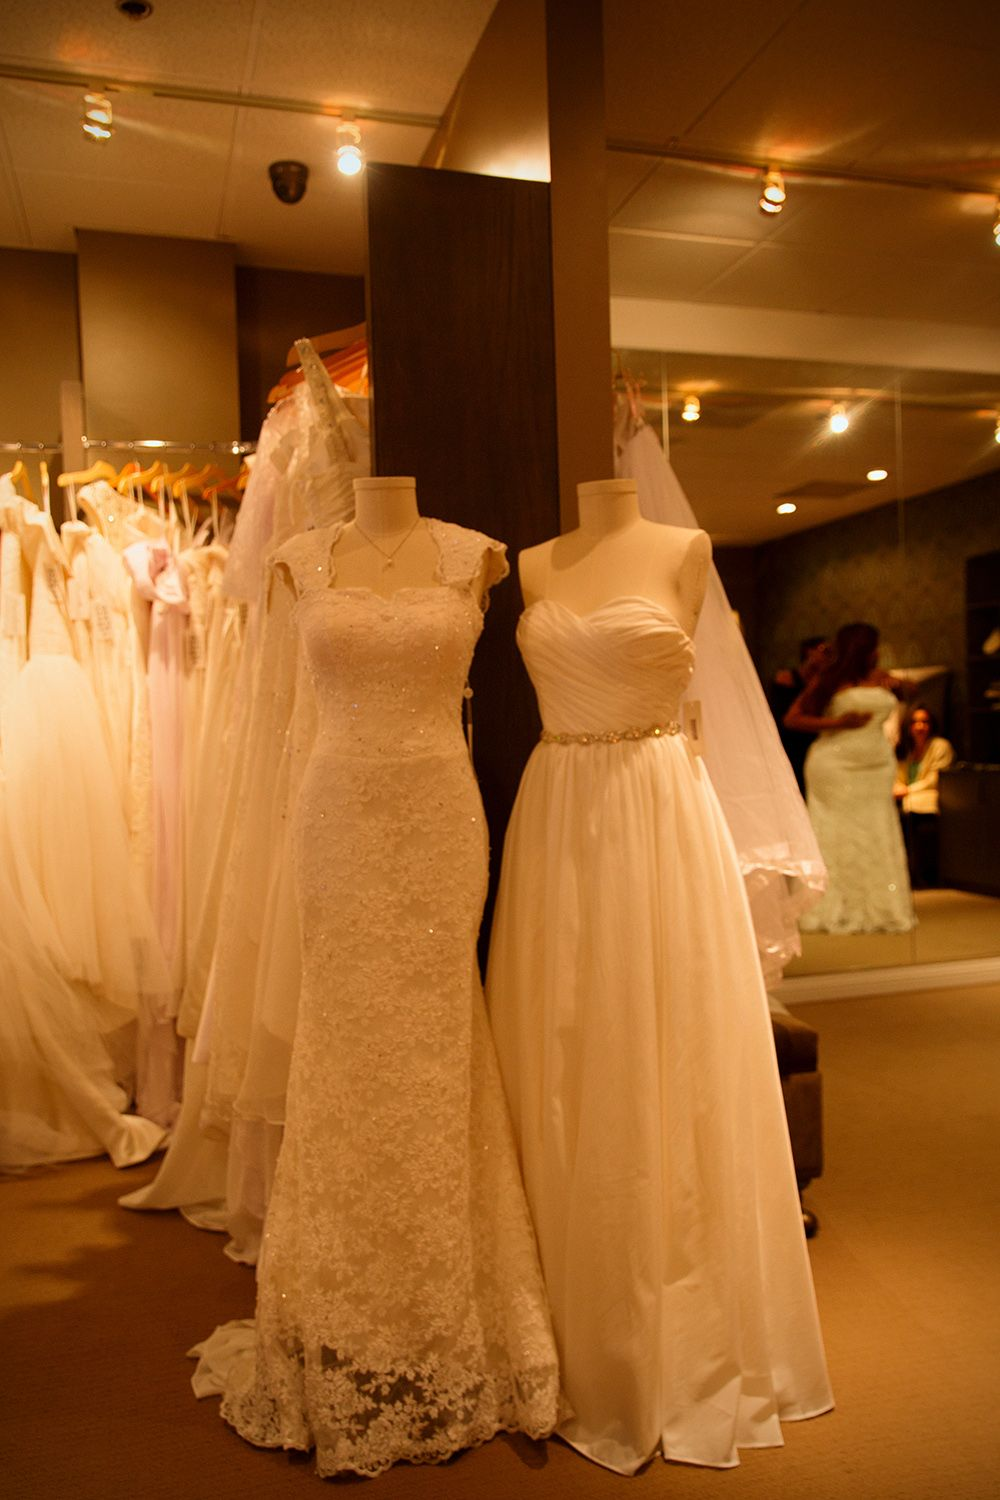 Amazing wedding gowns at amazing prices big sample sale for Downtown los angeles wedding dresses